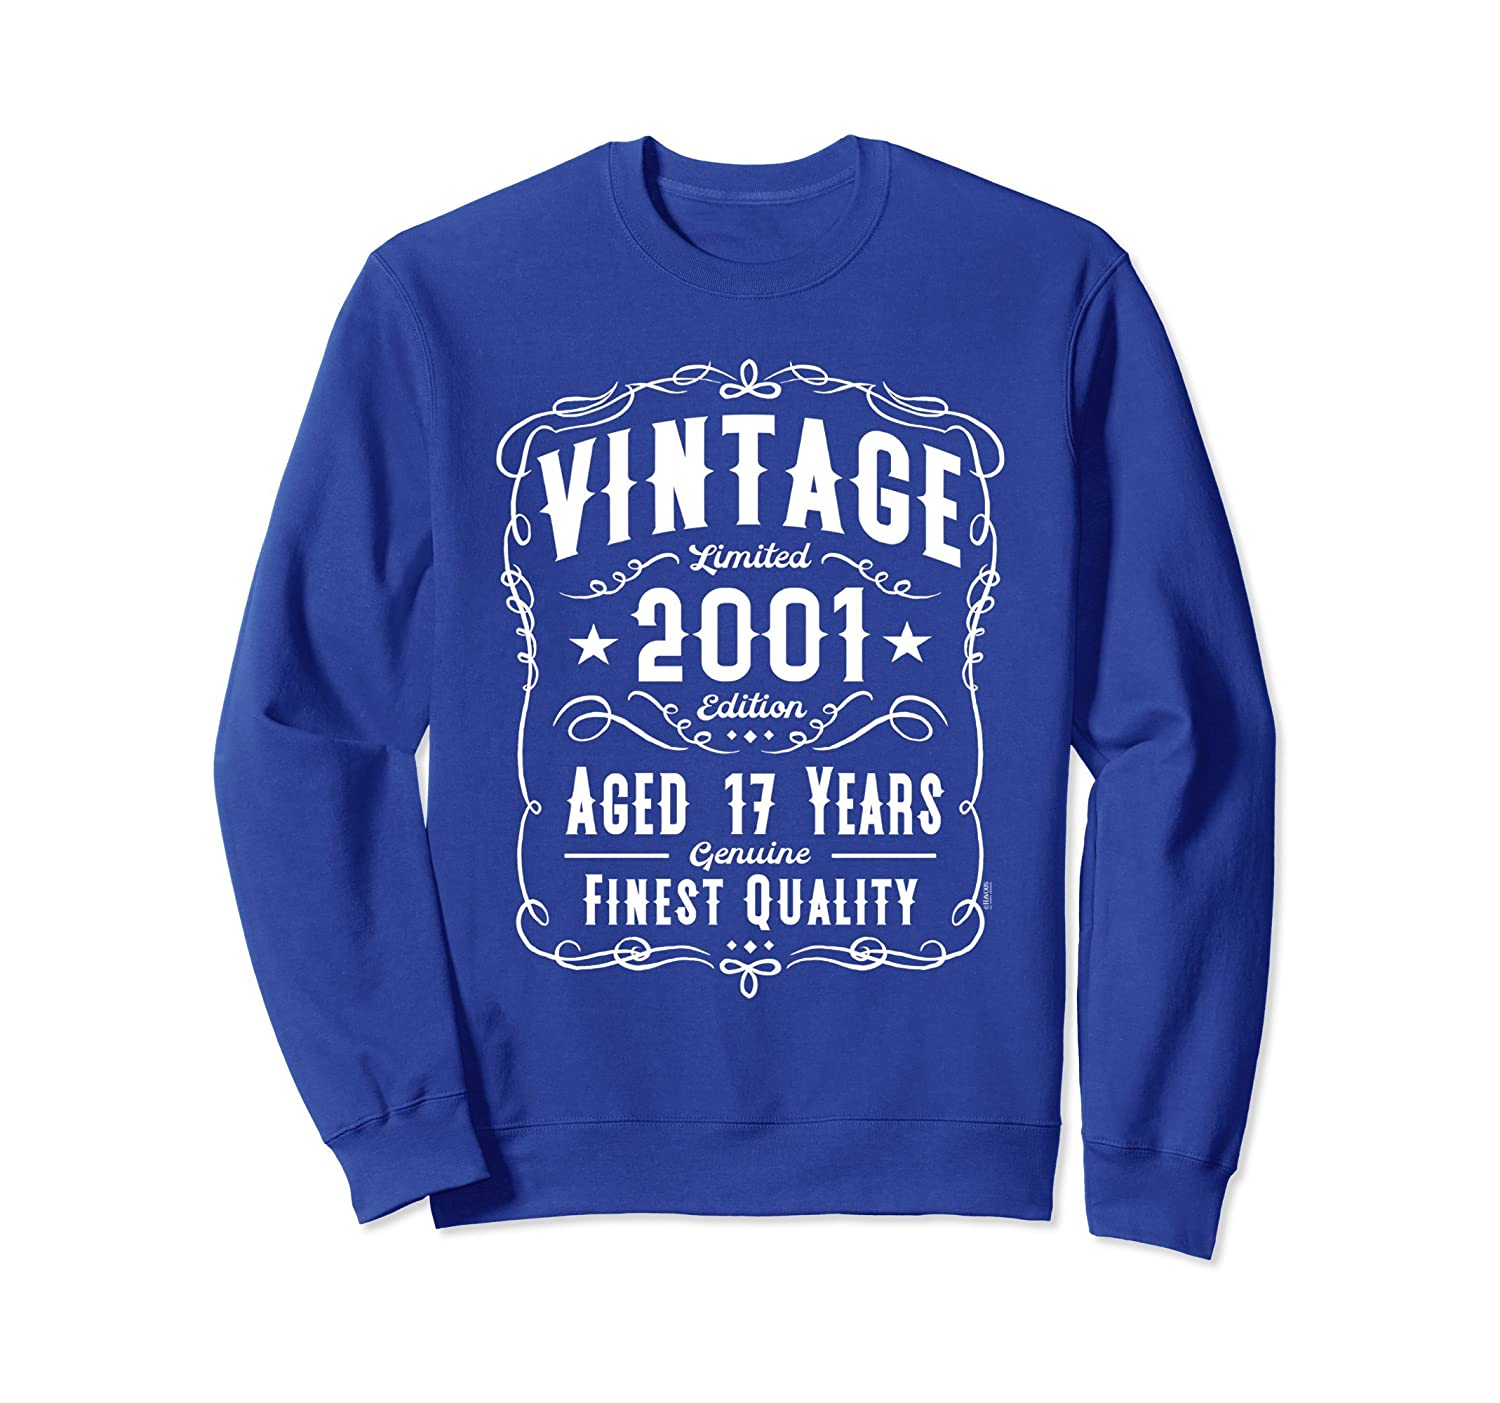 17th Birthday Gift Vintage 2001 Edition Sweatshirt-ah my shirt one gift